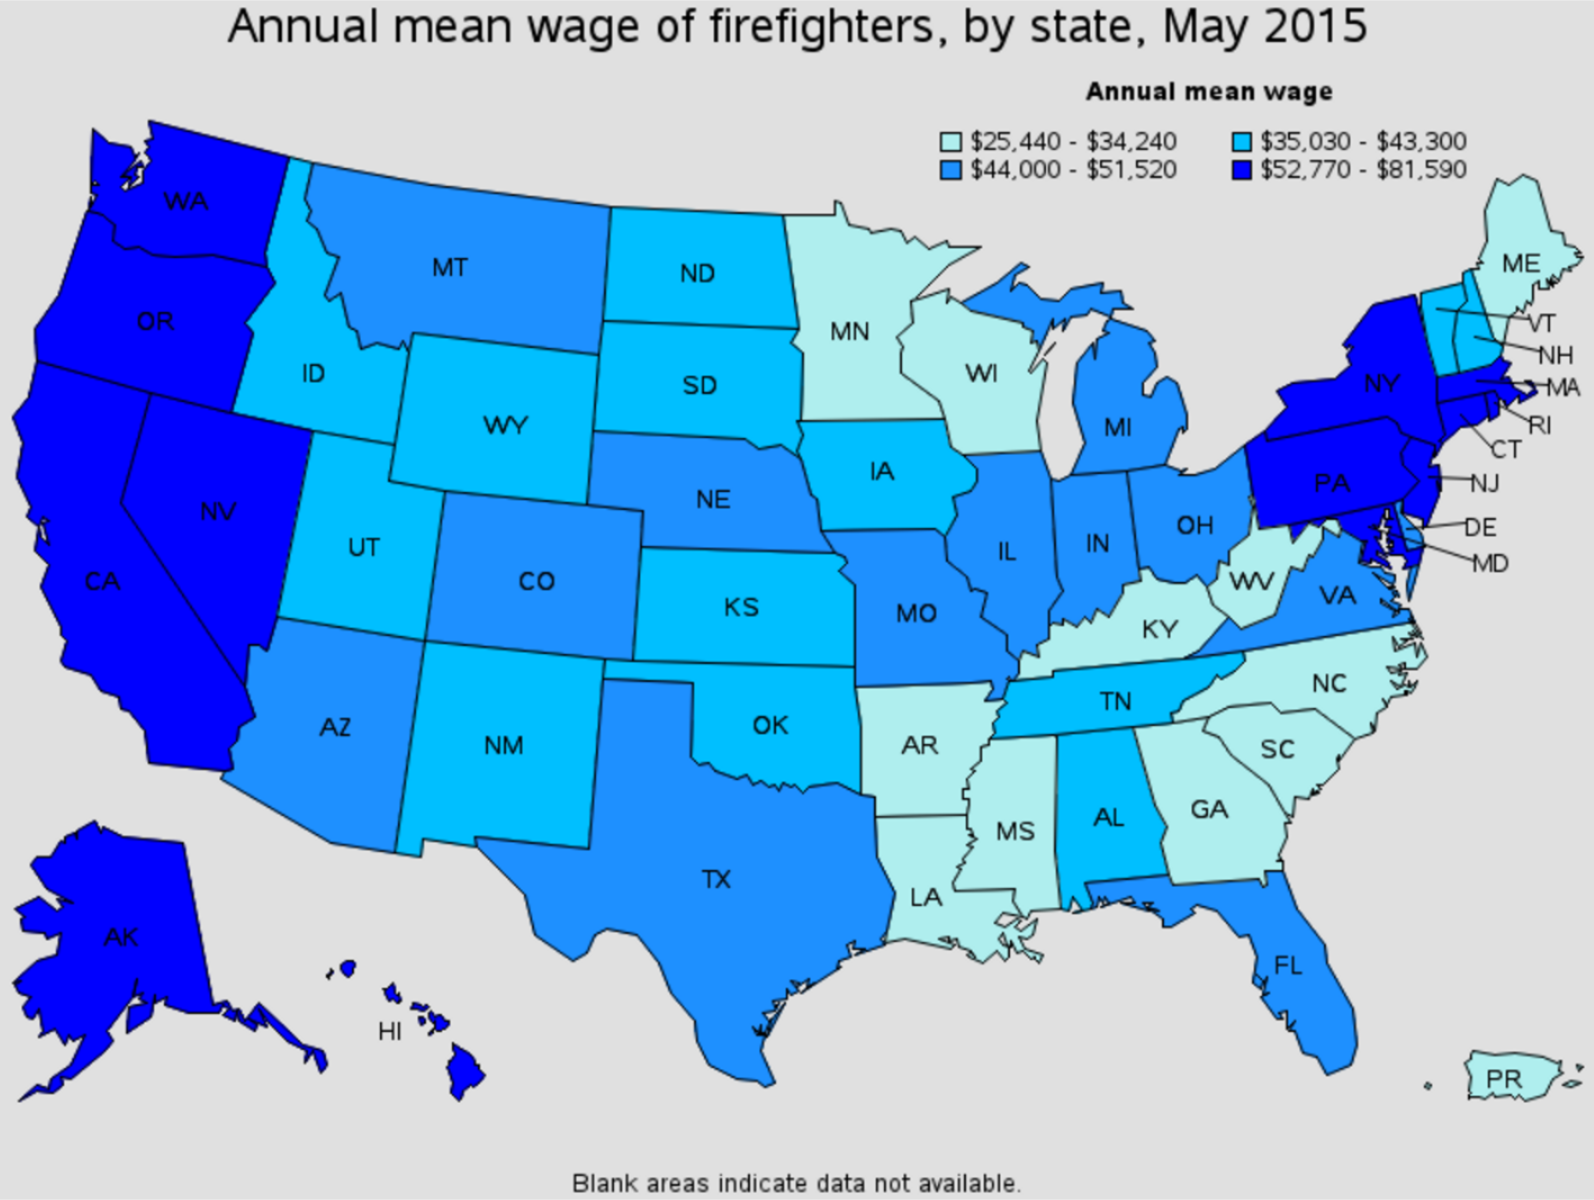 firefighter average salary by state Selbyville Delaware